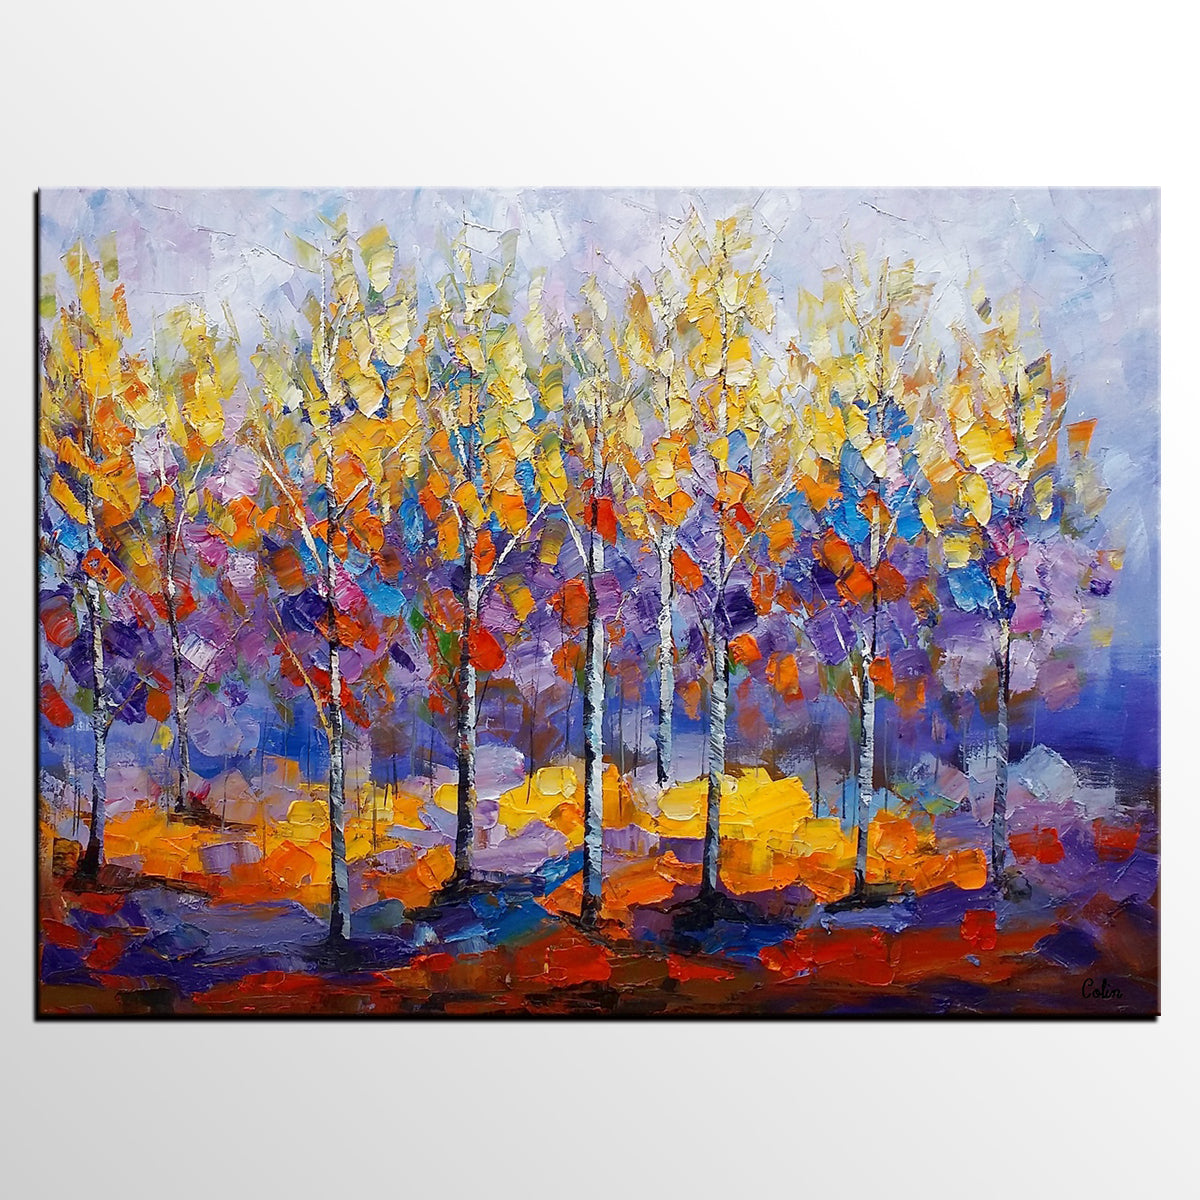 Forest Tree Painting, Abstract Art, Bedroom Wall Art, Landscape Painting, Large Art, Canvas Art, Wall Art, Oil Painting, Canvas Painting 249